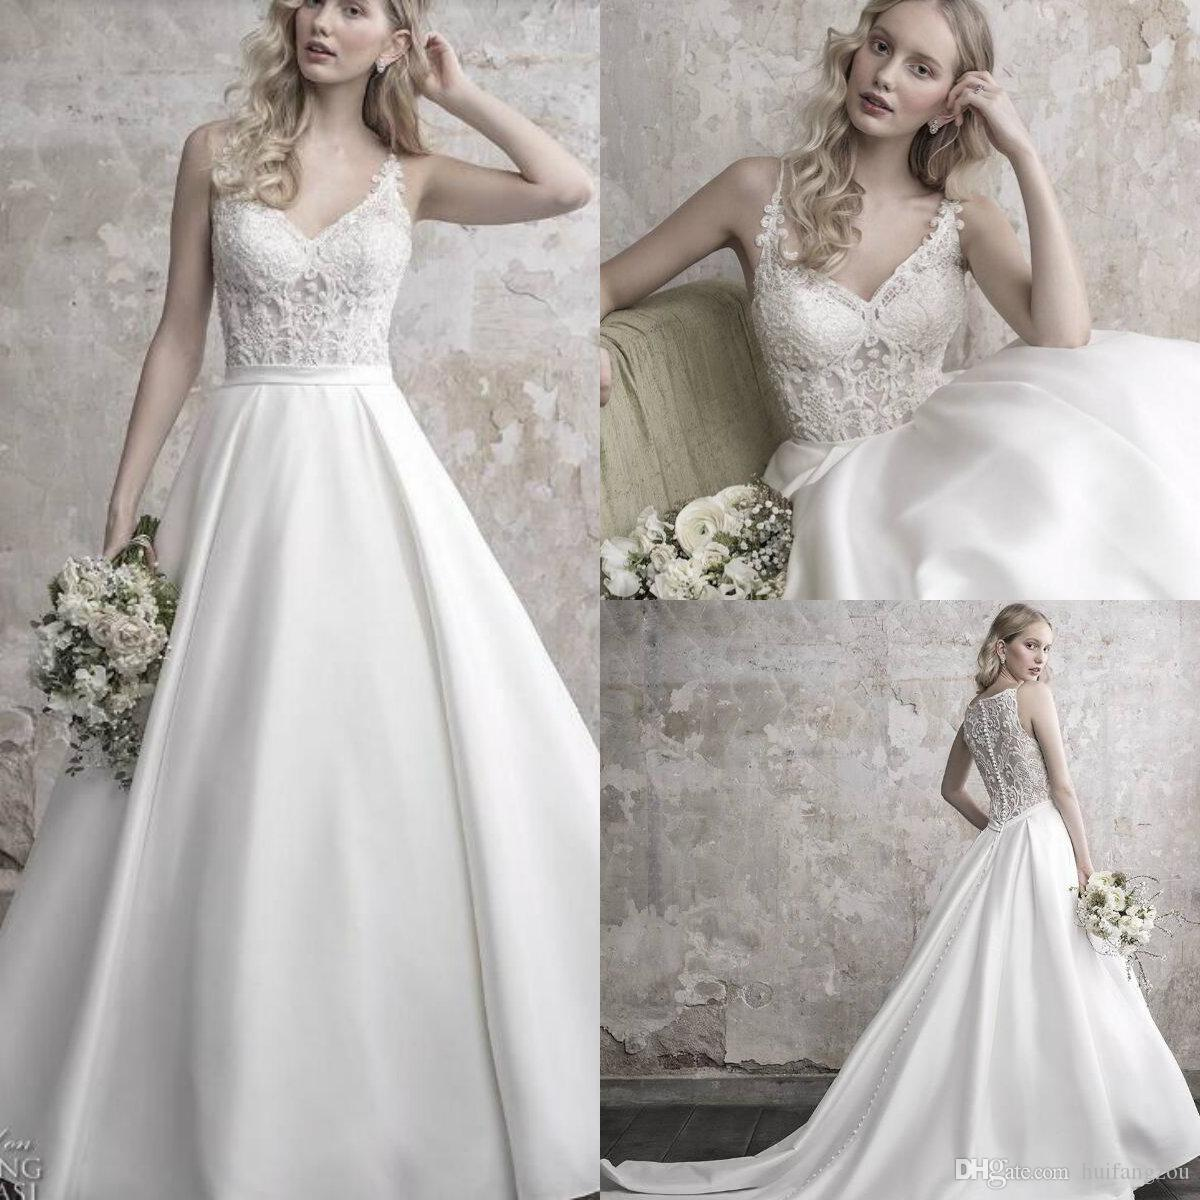 Discount 2019 Brand New Wedding Dress Fancy Spaghetti Illusion Lace  Applique Beads Satin Sweep Train Bridal Gowns Custom Made Vestido De Noiva  Bridal Wear ... 70486817a92e